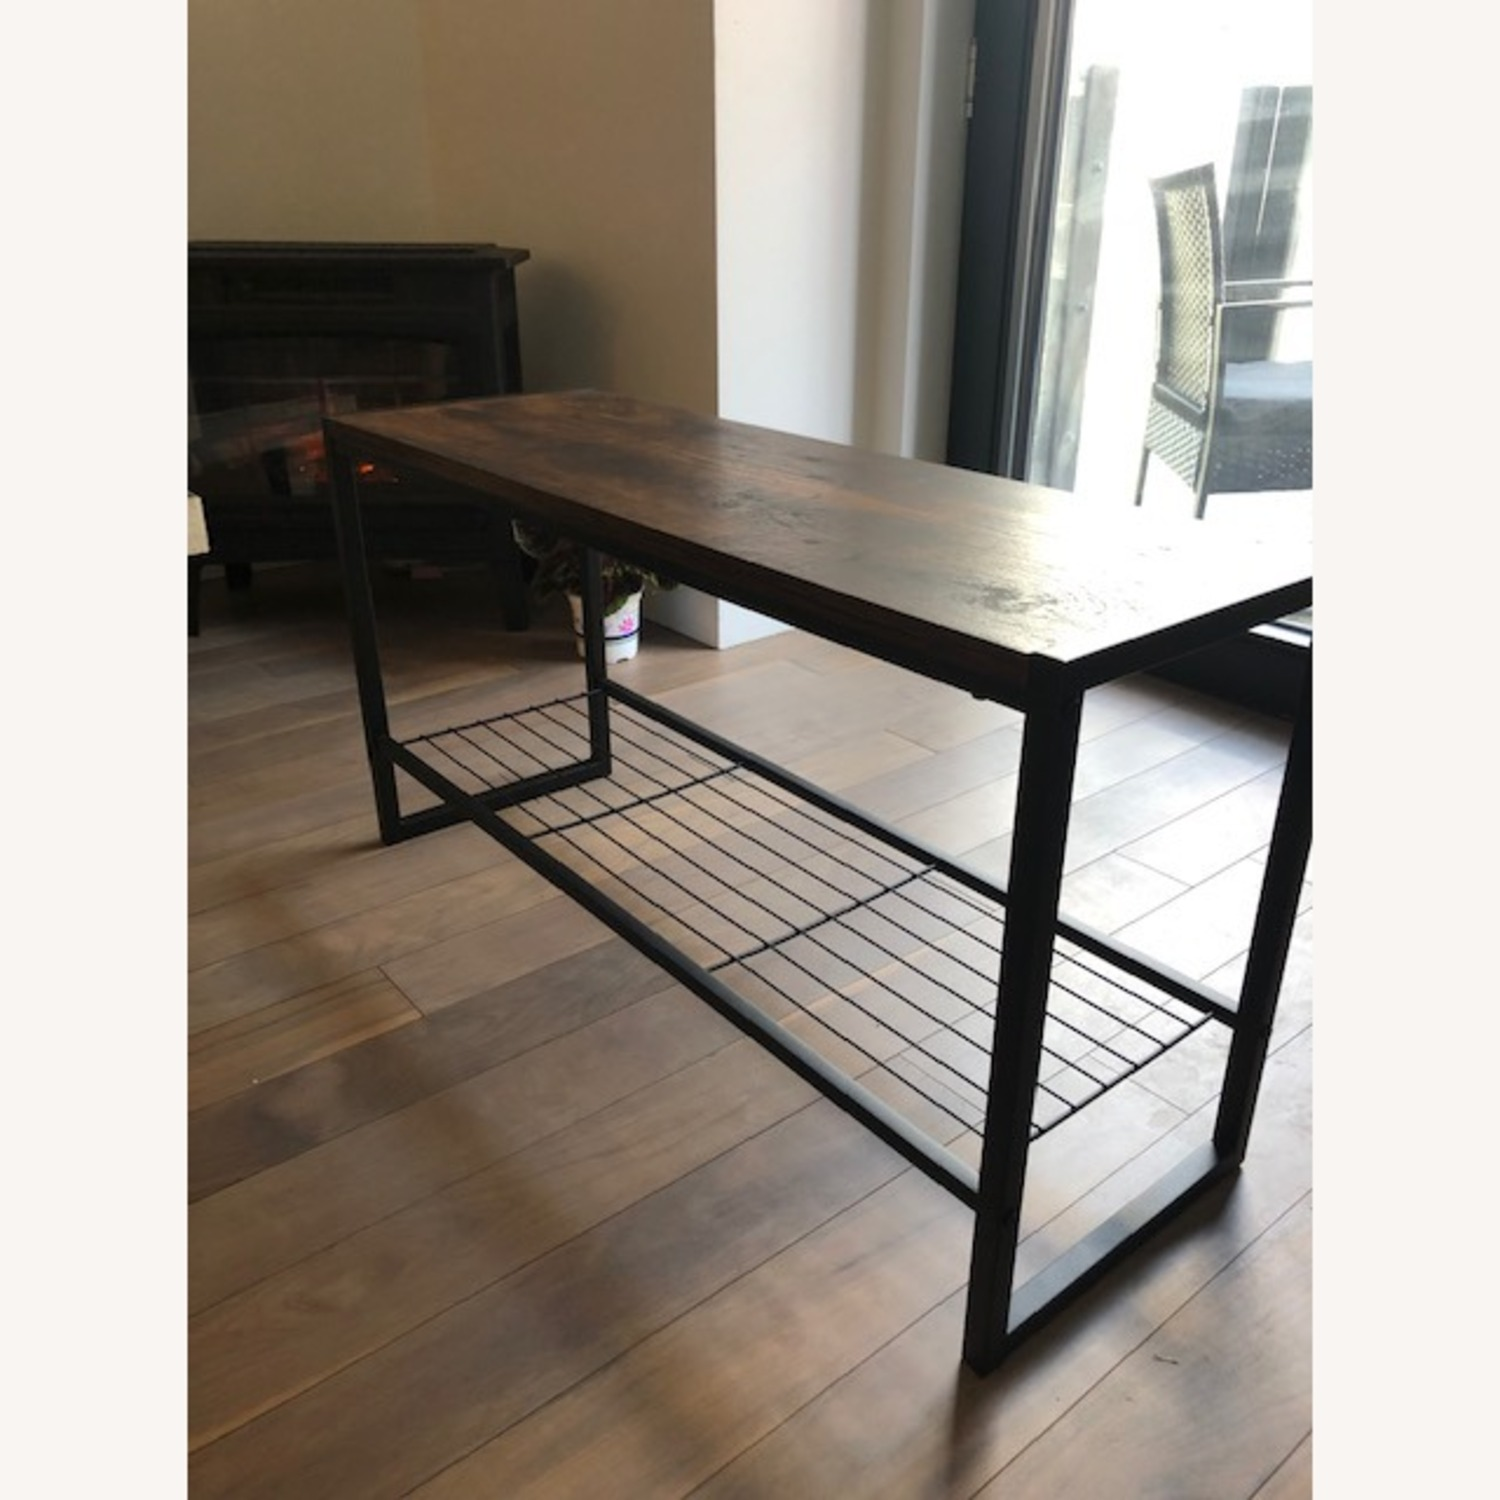 Whitmores Modern Industrial Entry Way Bench - image-1